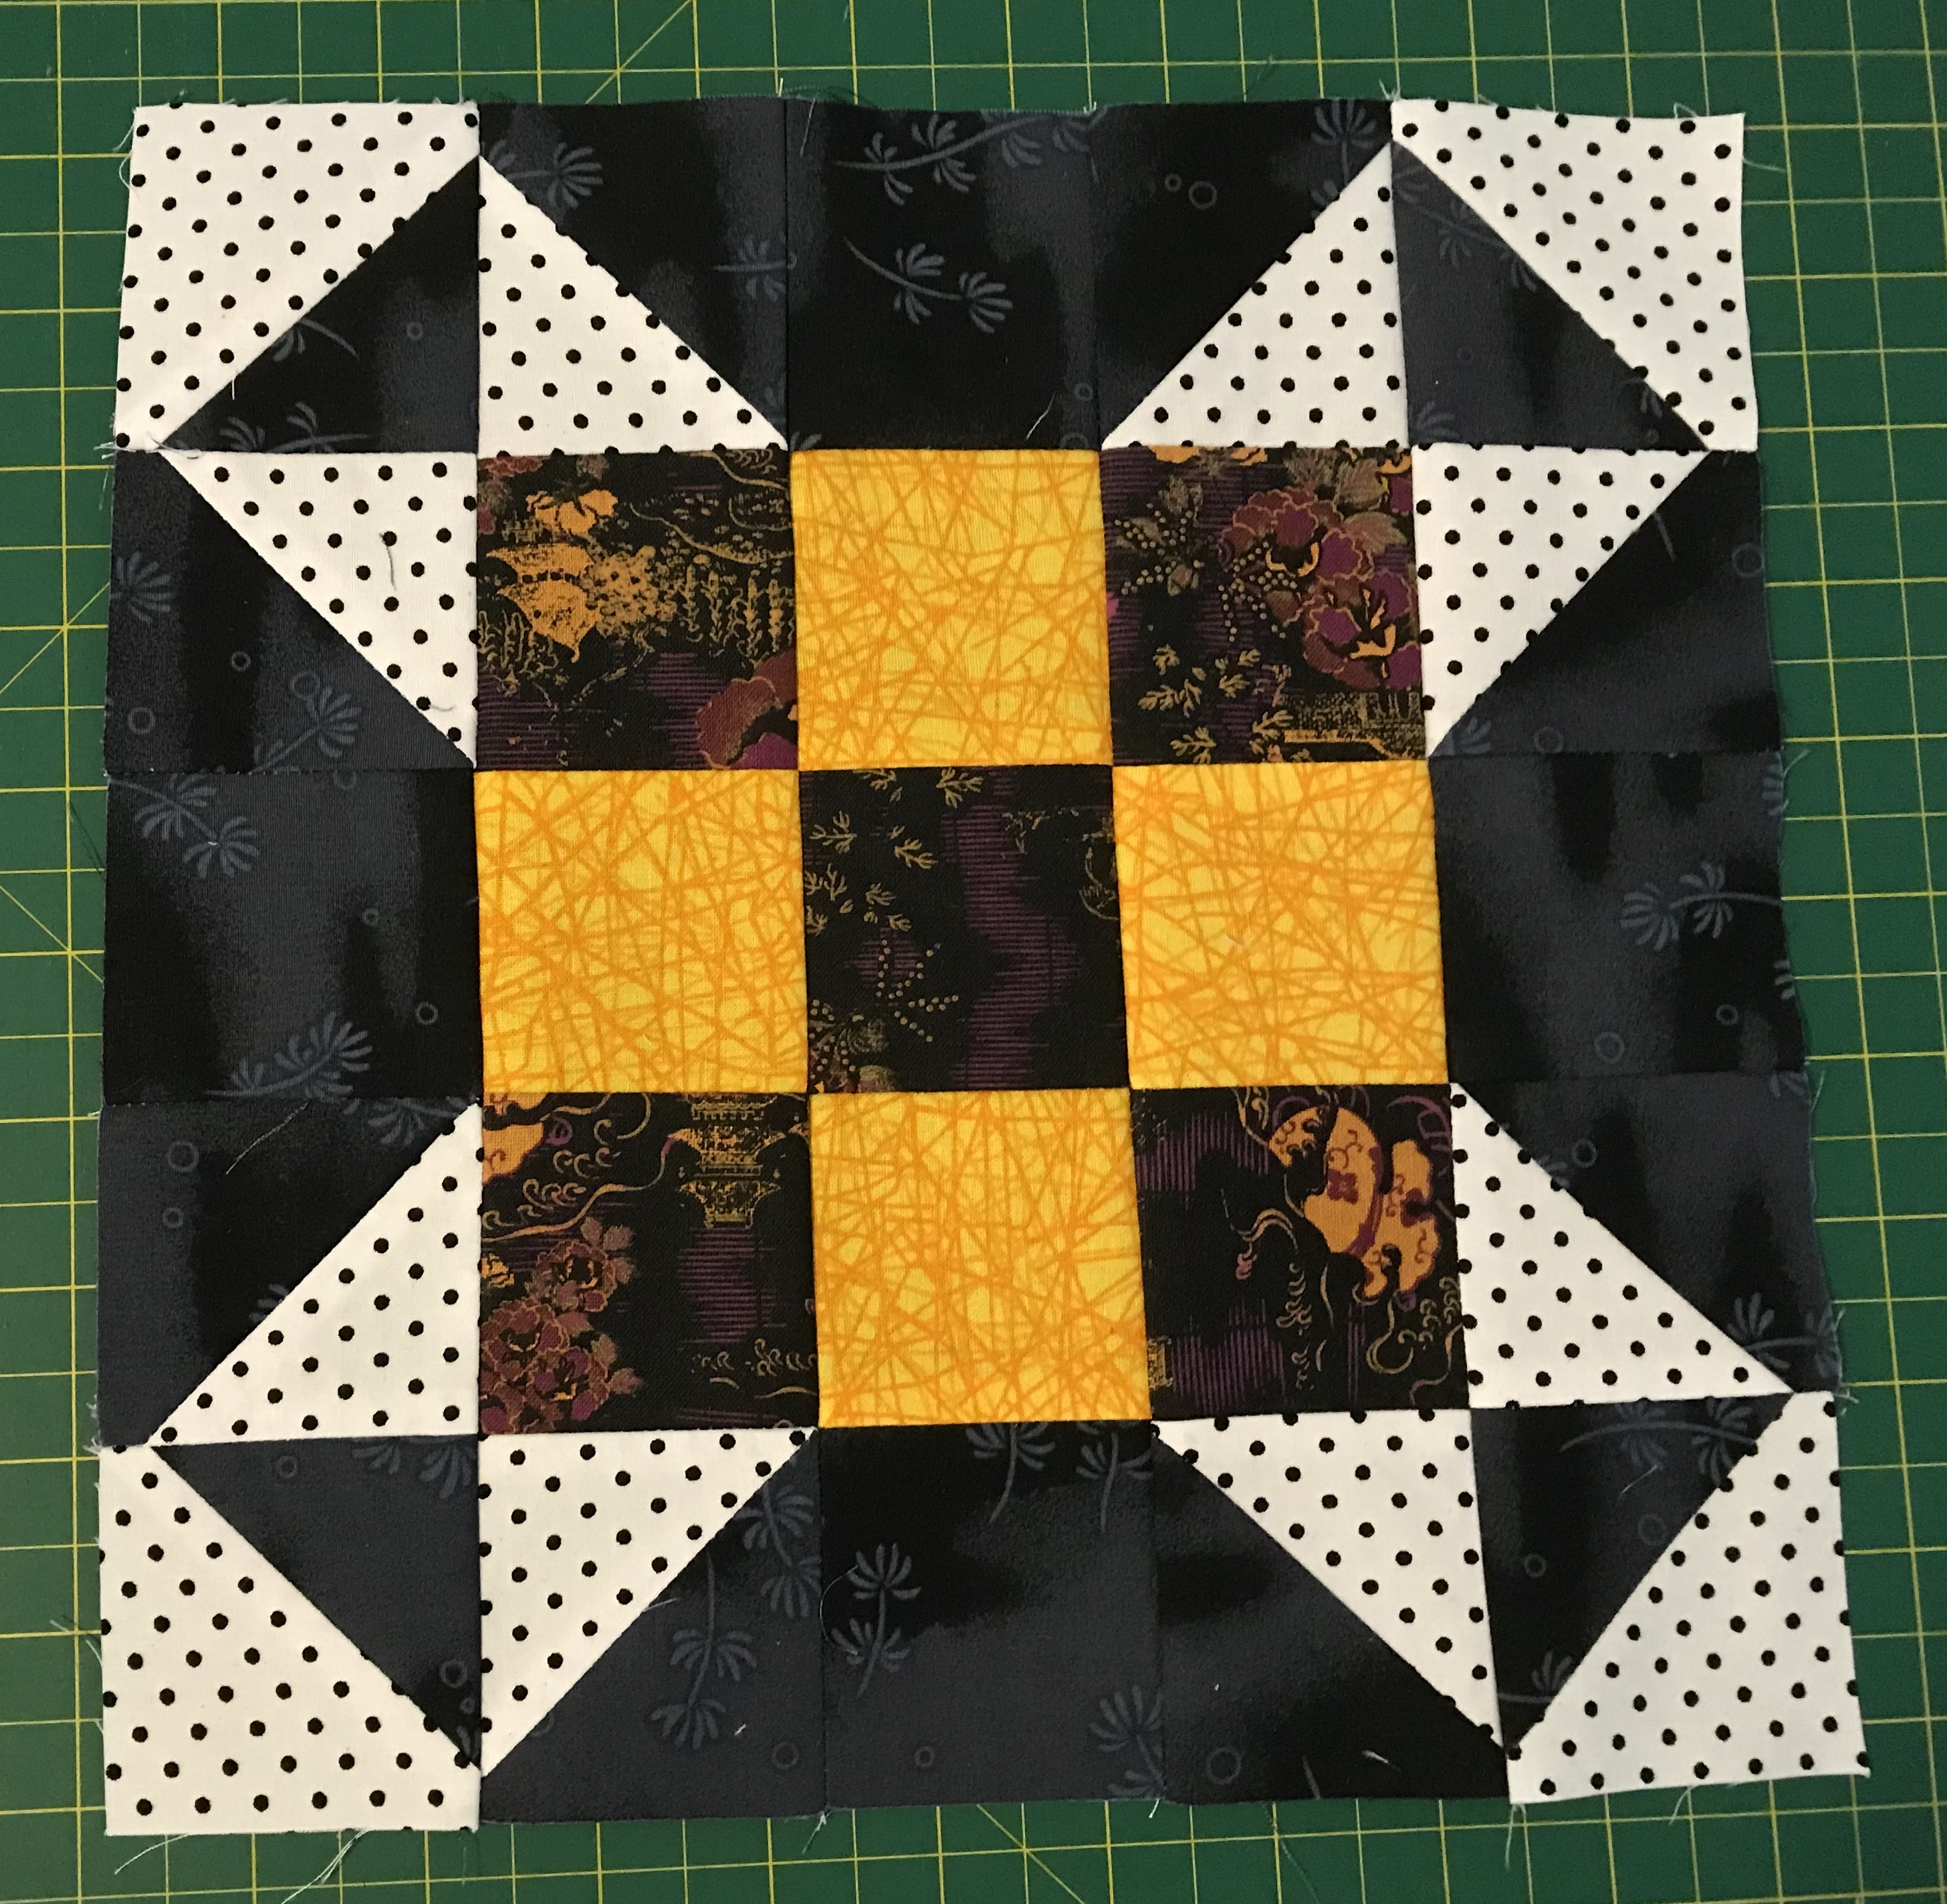 Here's my first two blocks. Love seeing the colours others have used. CA8E02A5-0D6E-42F9-939A-0AC8